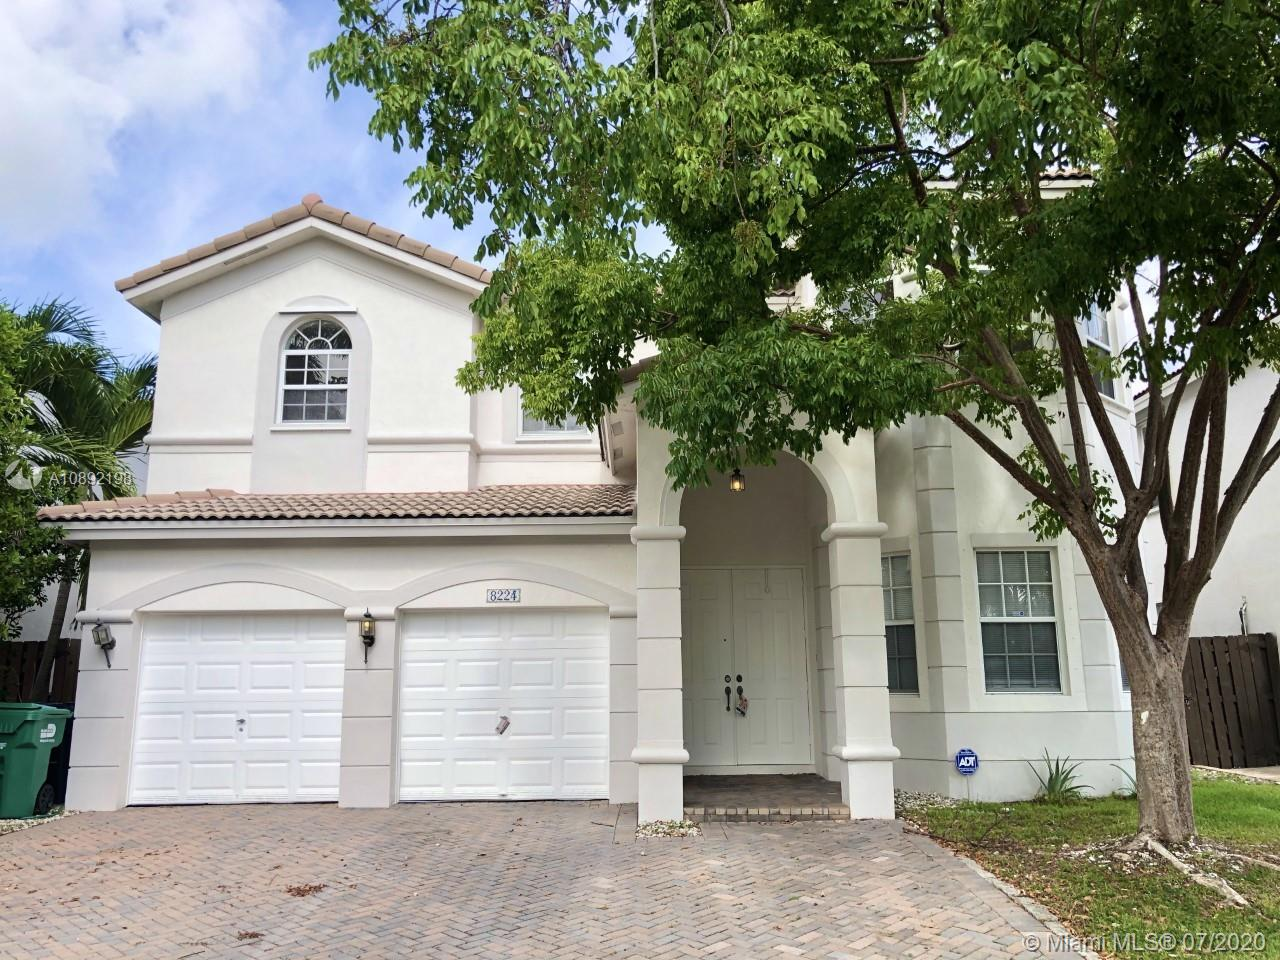 Islands At Doral - 8224 NW 115th Ct, Doral, FL 33178